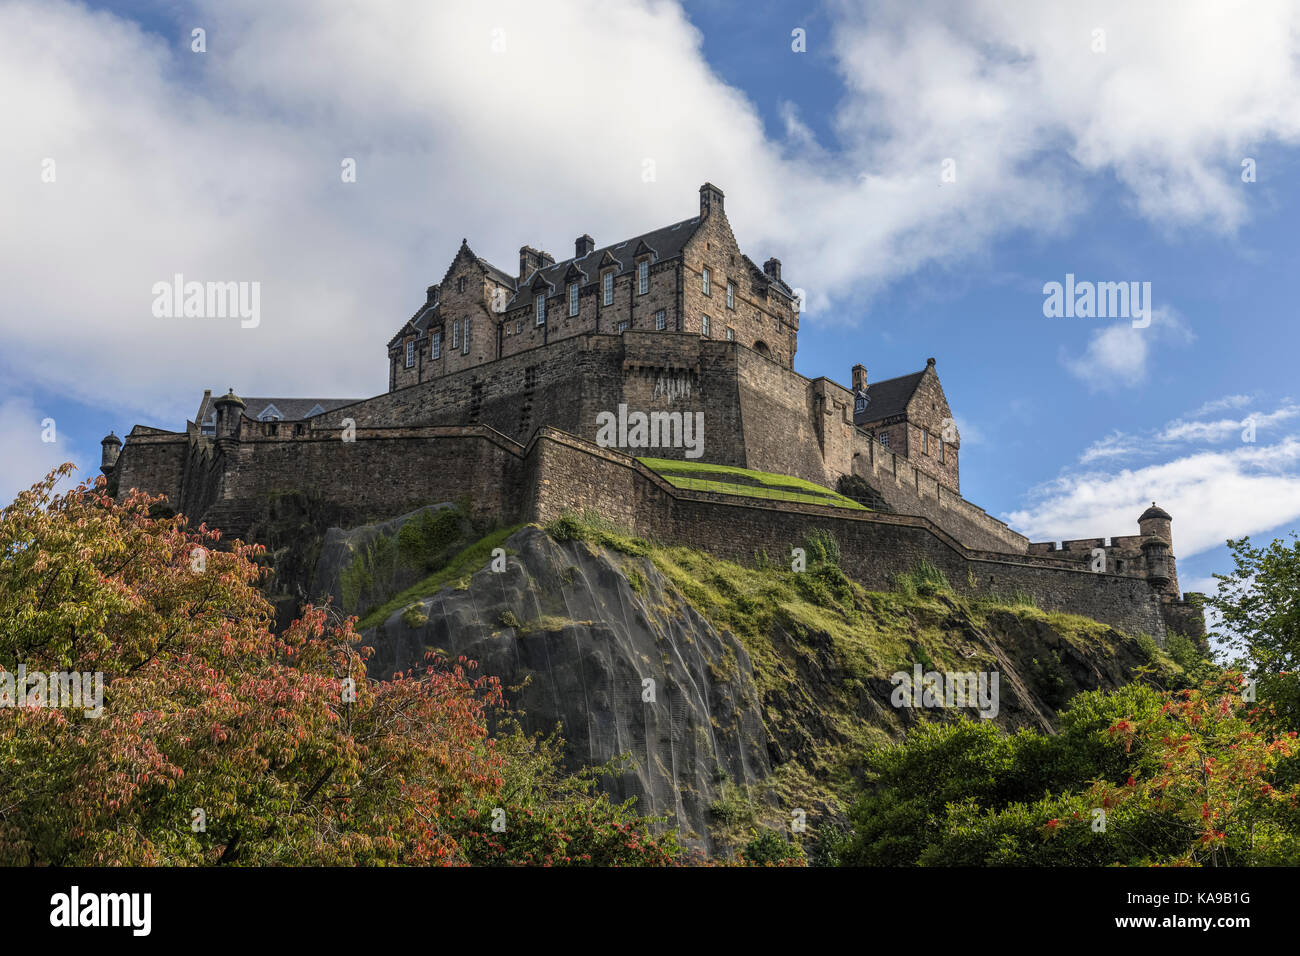 Edinburgh Castle, Lothian, Scotland, United Kingdom - Stock Image